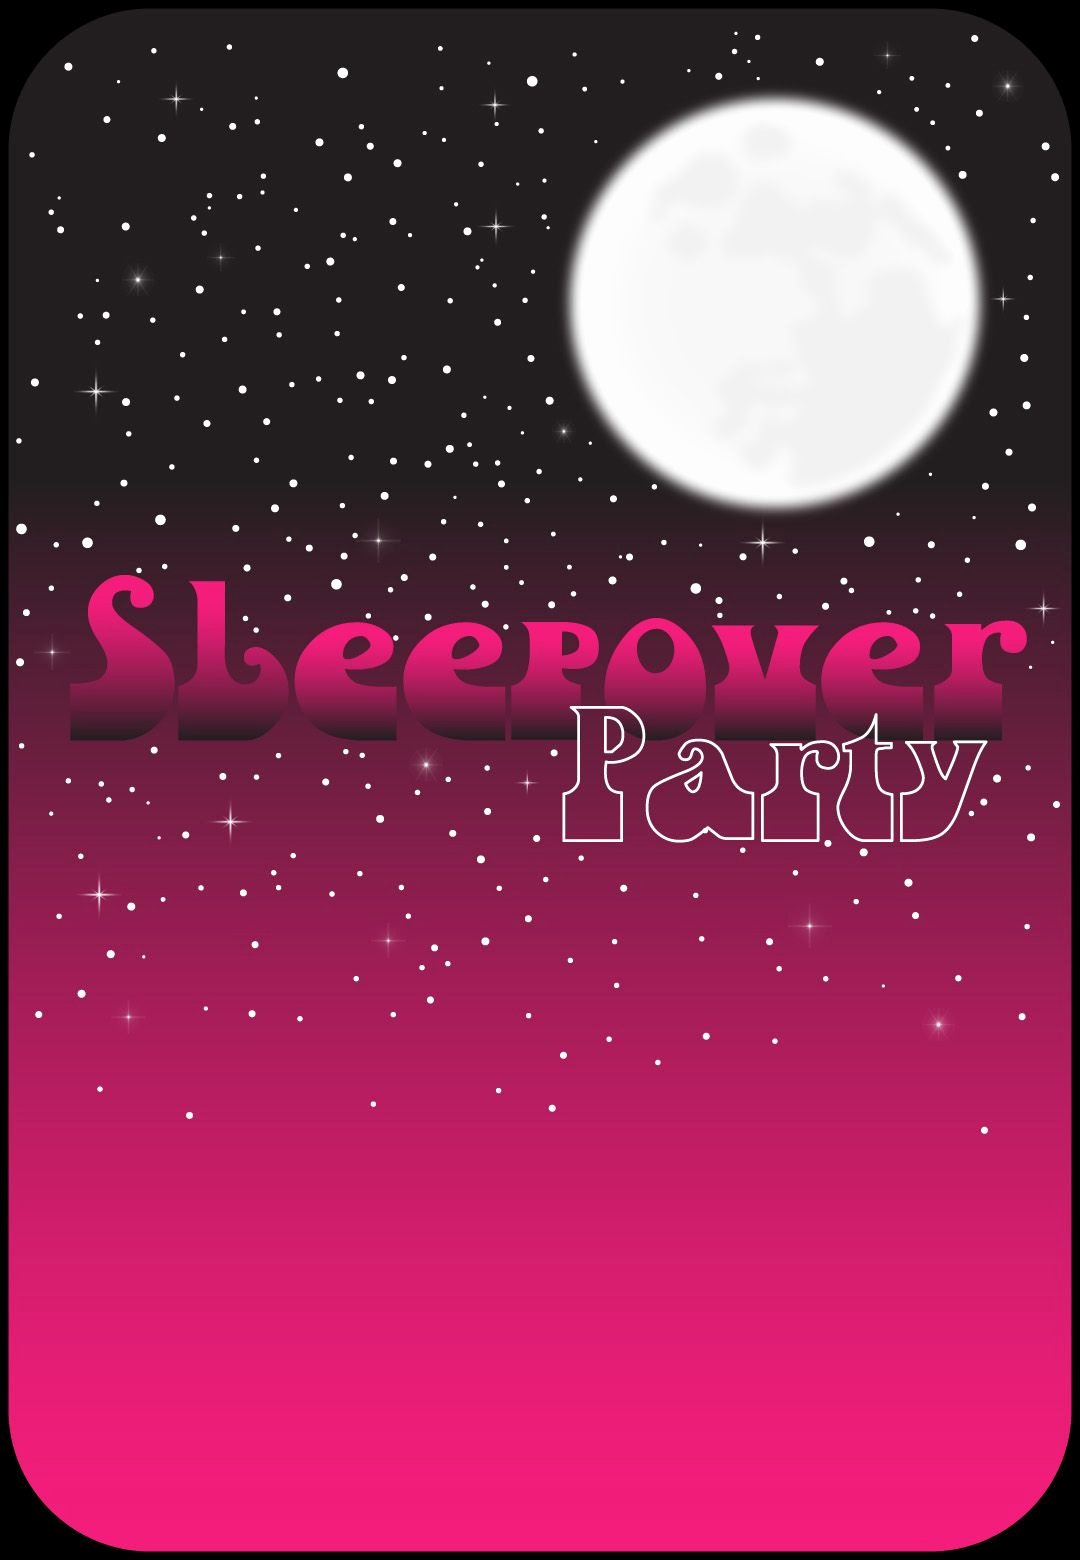 Free Sleepover Invitation Template Beautiful Free Printable Pink Night Invitation Sleepover Invitations In 2019